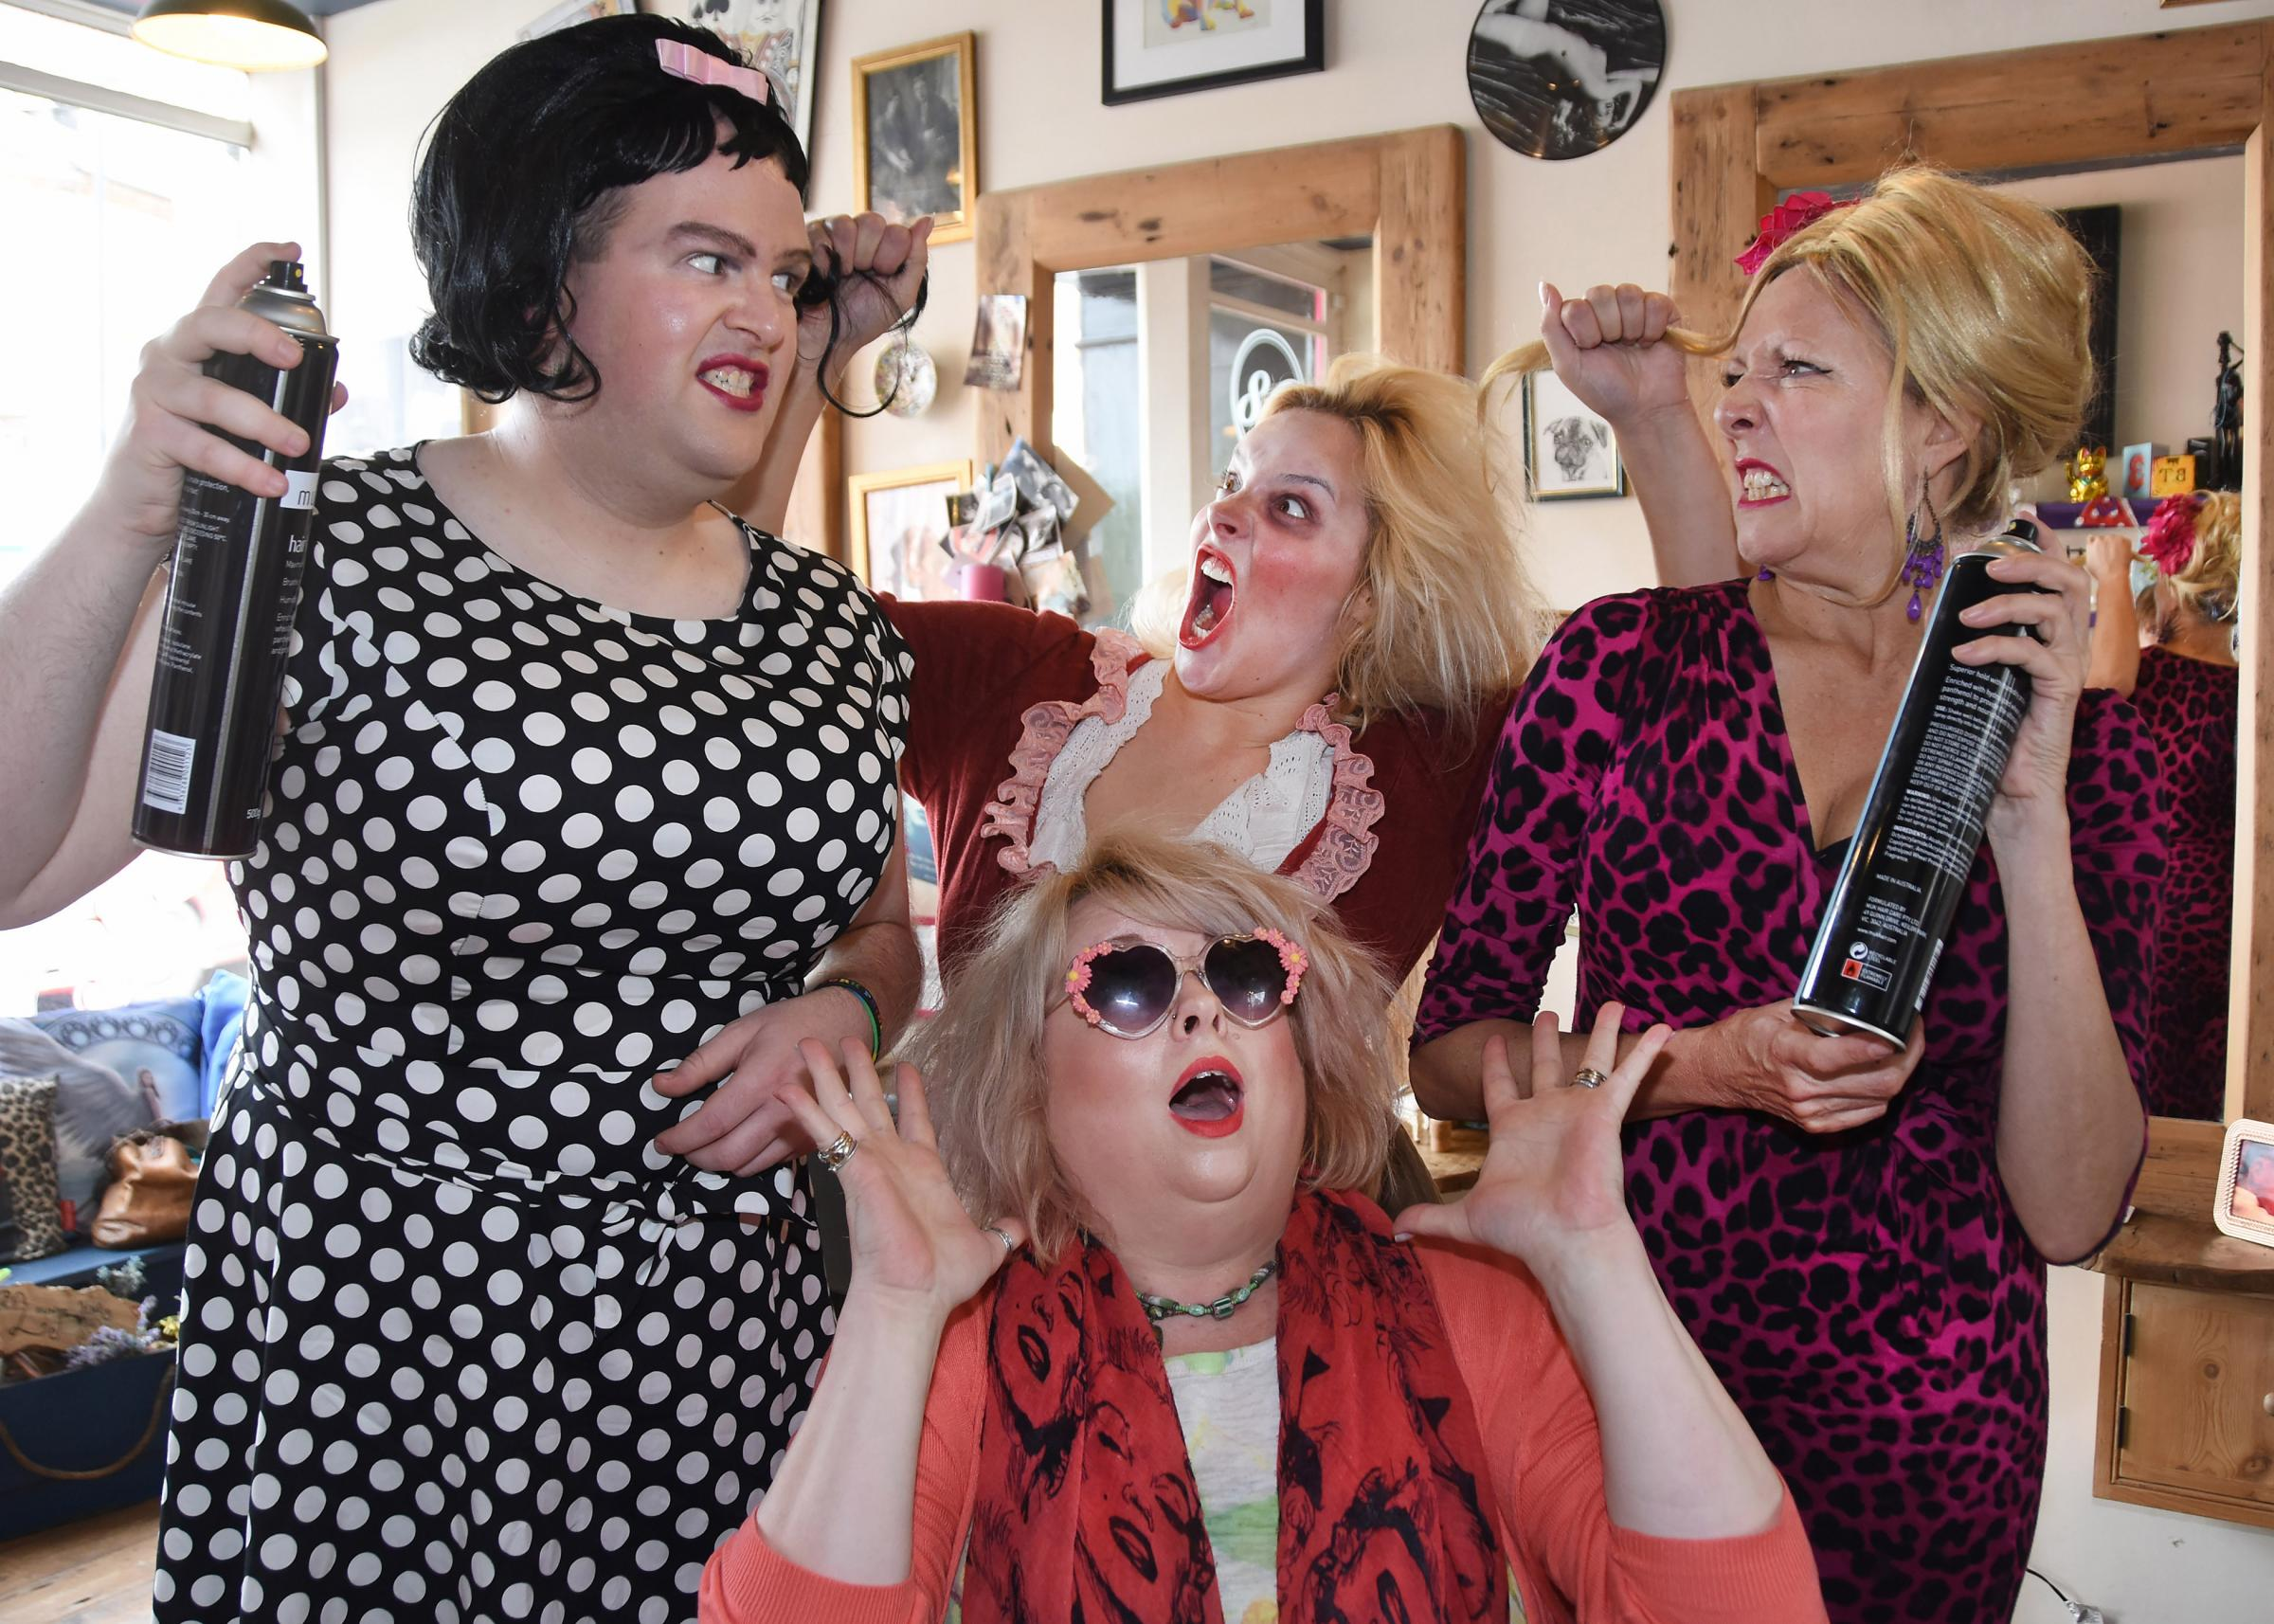 Hair-raising! David Rennie, as Hairspray's Edna Turnblad, left, Olivia Cole, as York Dungeon's Betty Turpin, and Rachel Alexander-Hill as Hairspray's Velma Von Tussle, with salon owner Louise Ndlovu at The Lounge, in Gillygate, York. Picture: